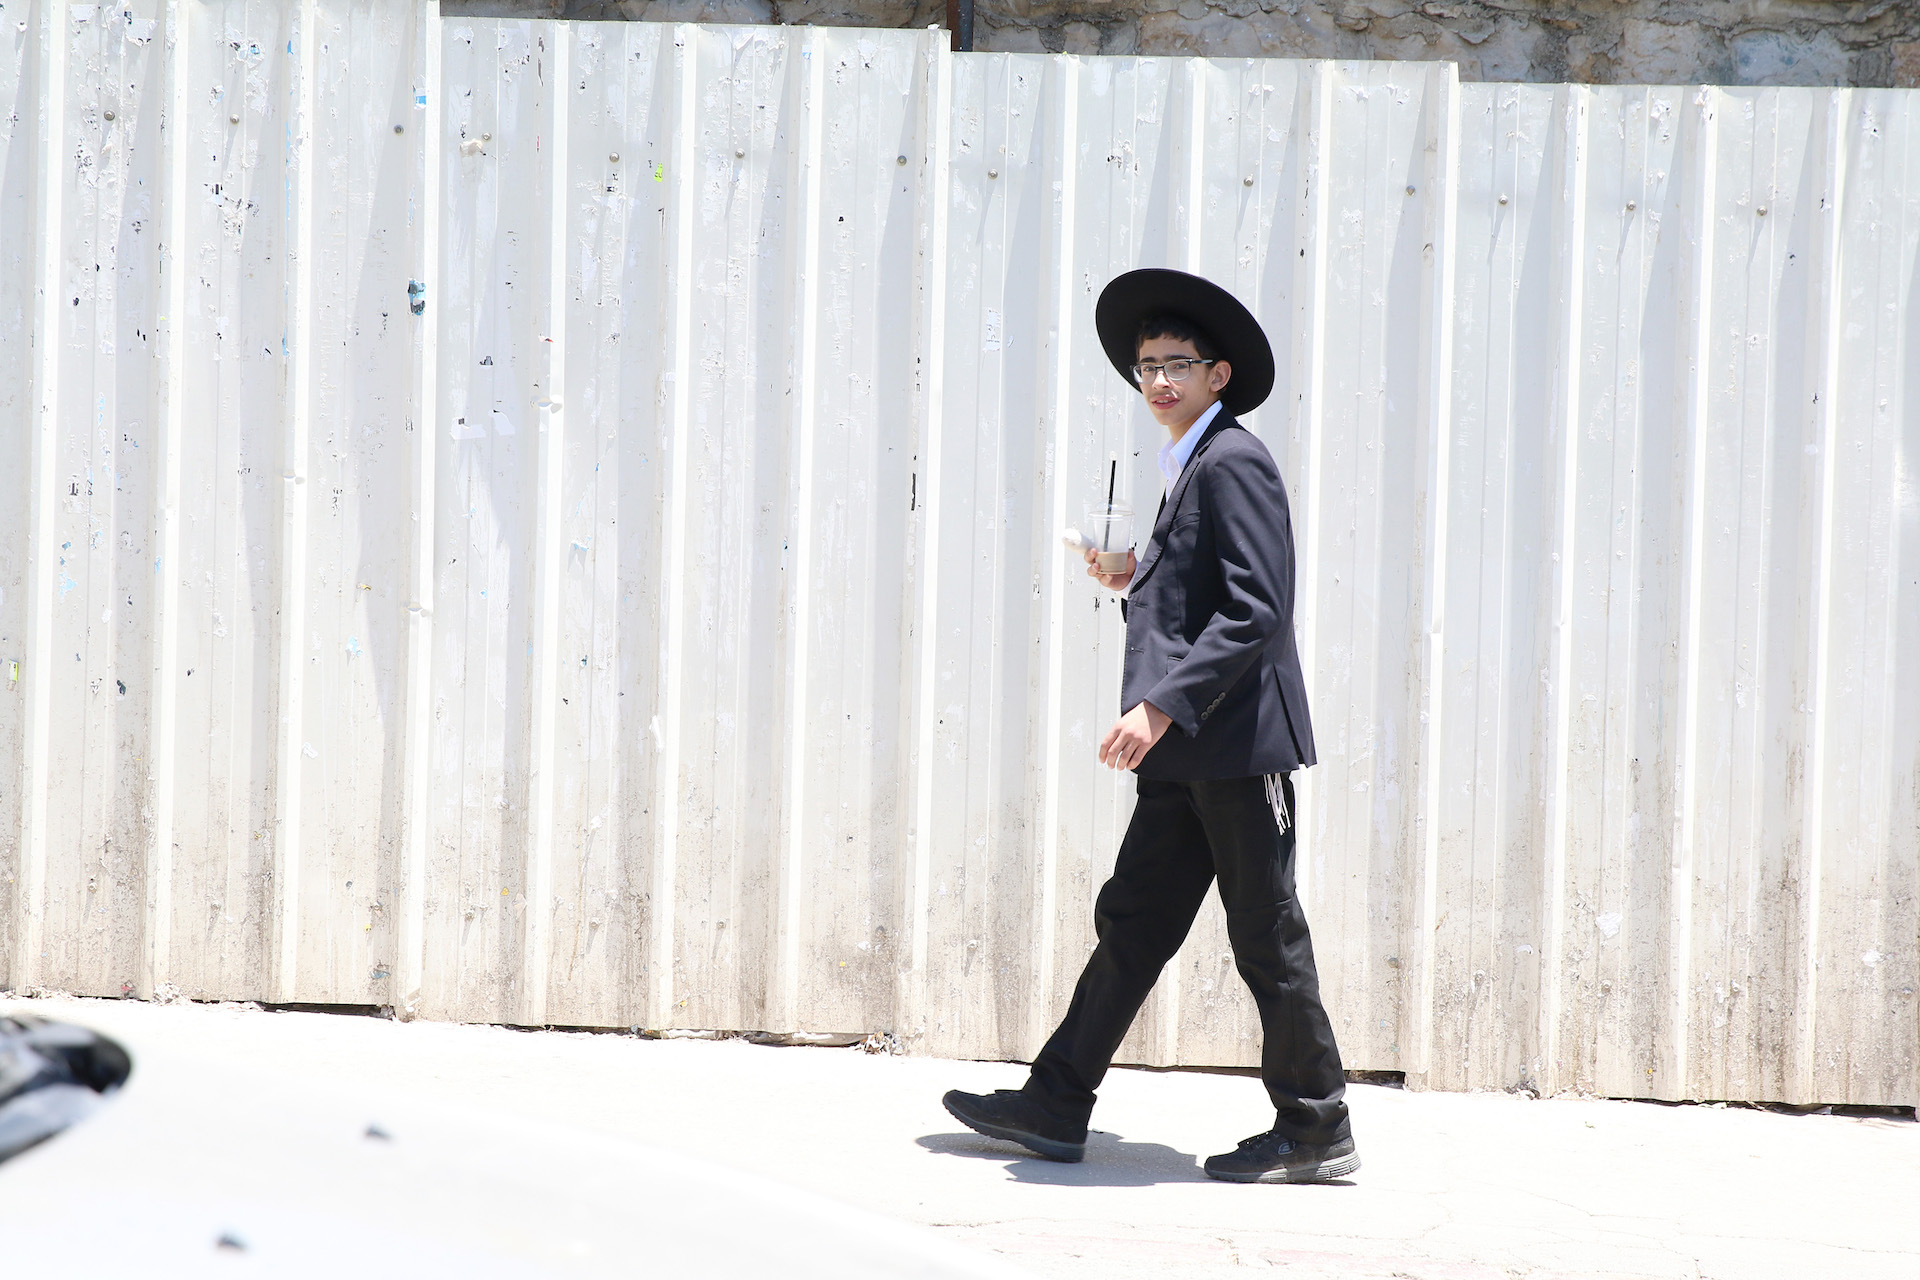 05/30/2016 Jerusalem, Israel A young Haredi boy walks around the Mea Sharim neighborhood in Jerusalem. Mea Sharim is populated mostly by Haredi Jews, a strictly orthodox group inclined to reject modern secular strains of juadaism in favor of traditional practices.